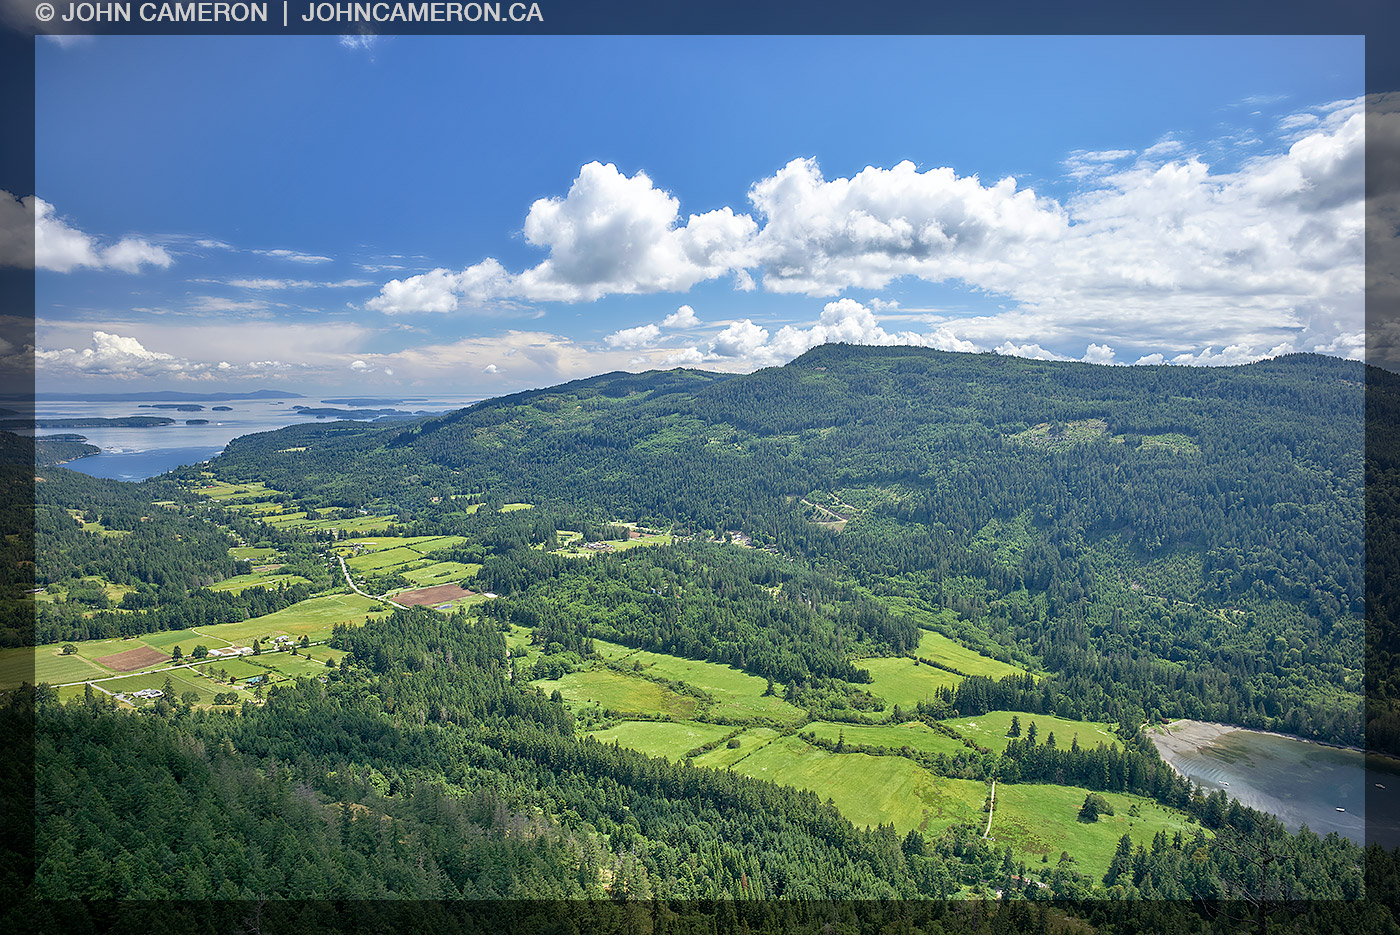 The Fulford Valley on Salt Spring Island